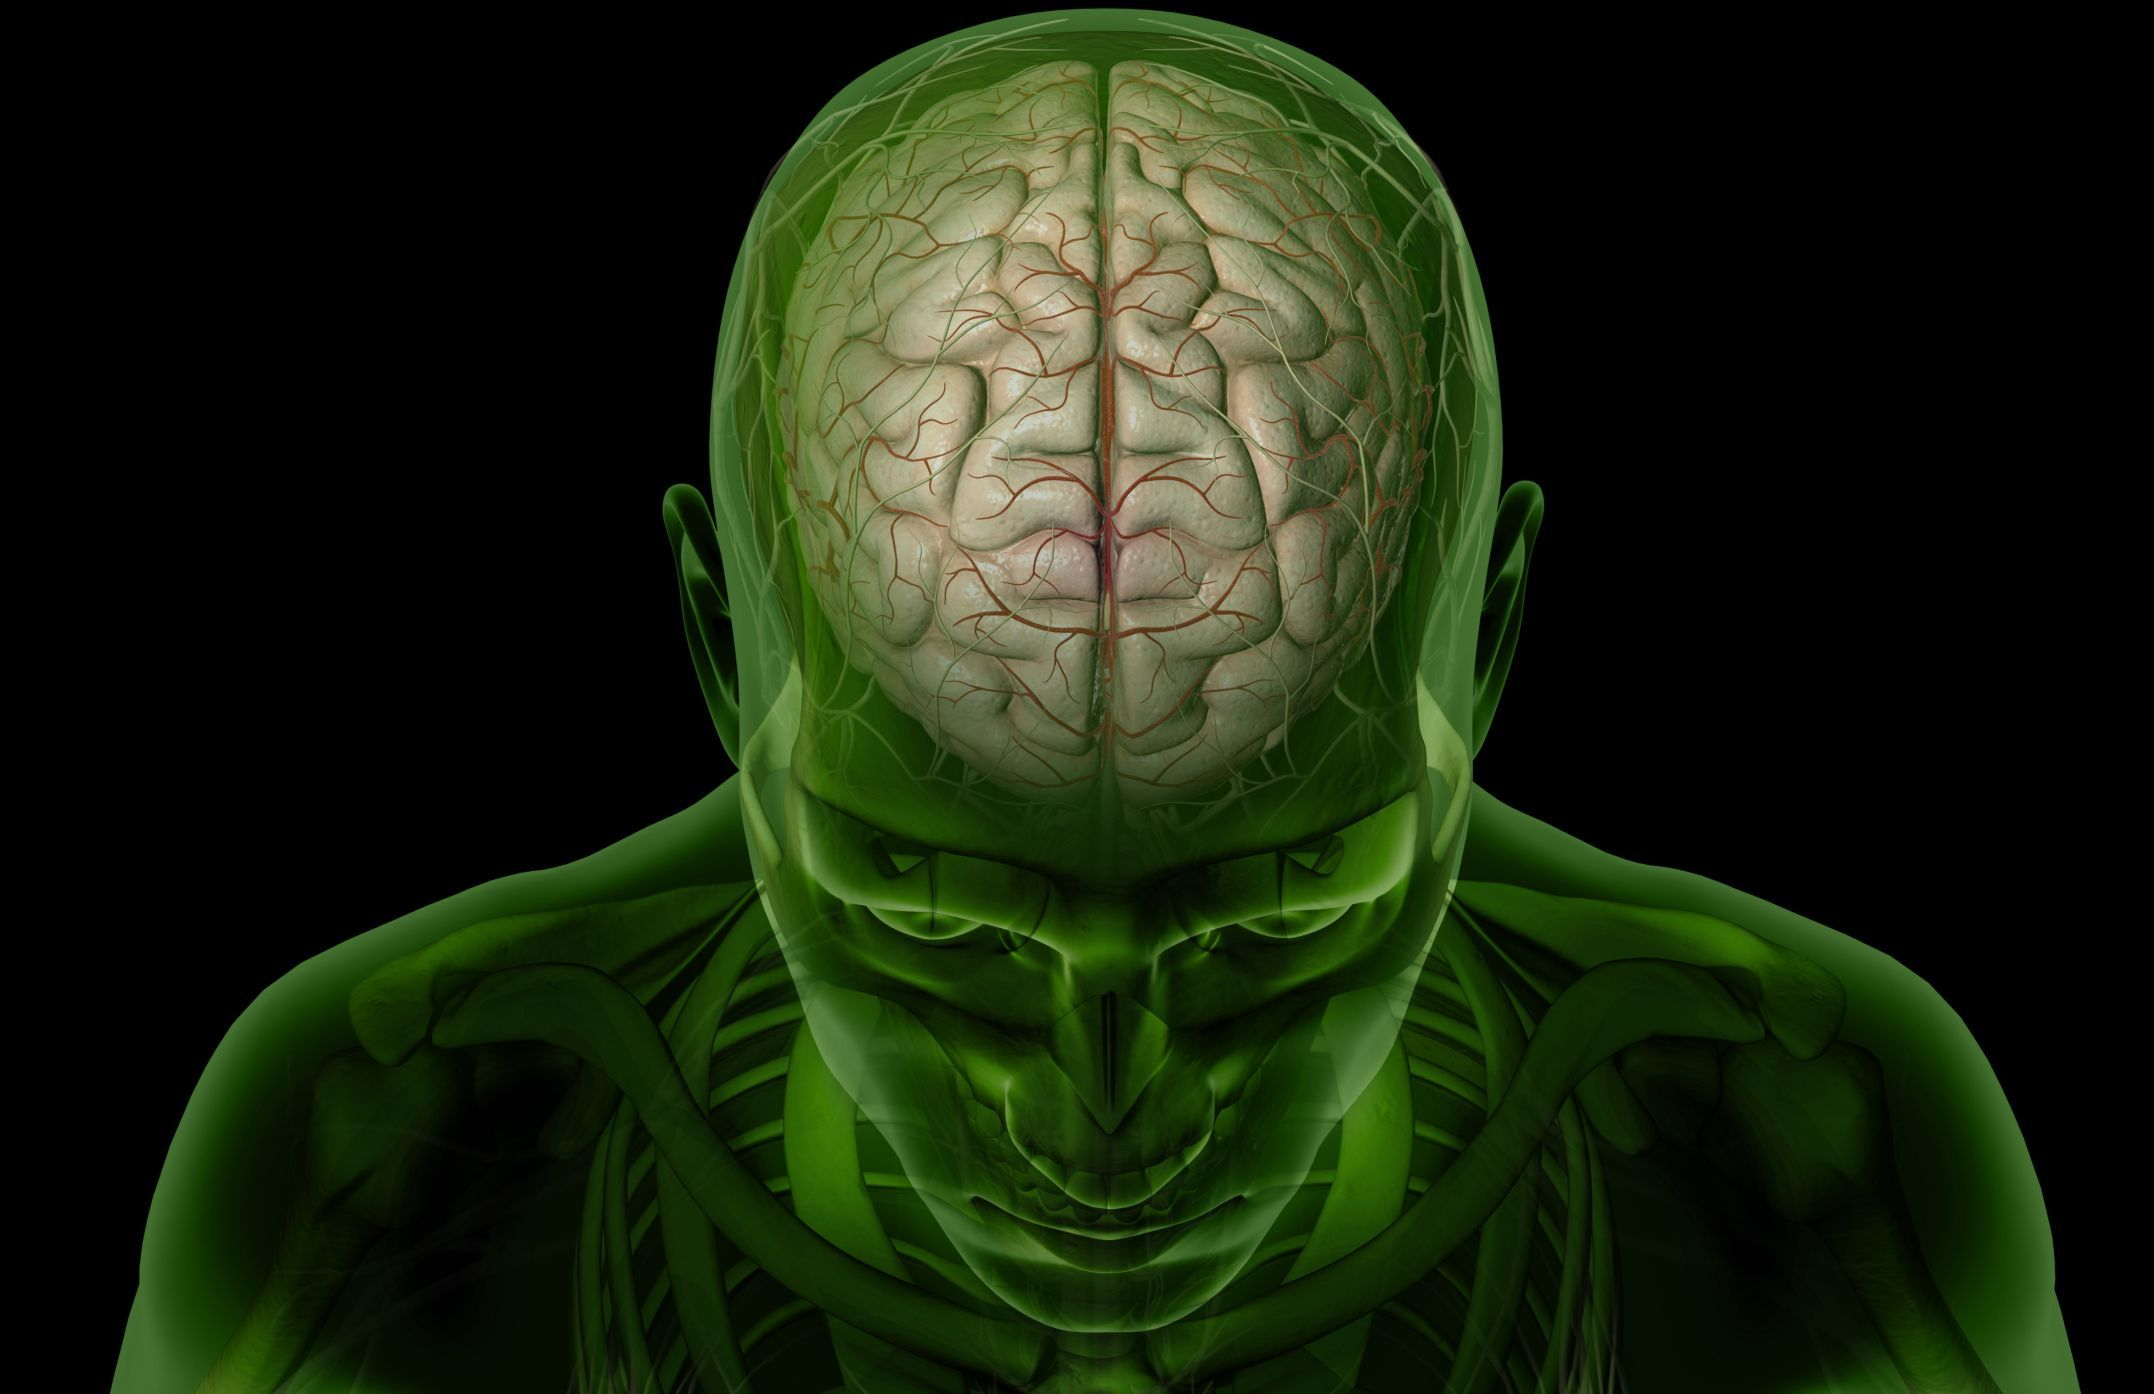 A closeup of a man with transparent green skin (his brain is visible)